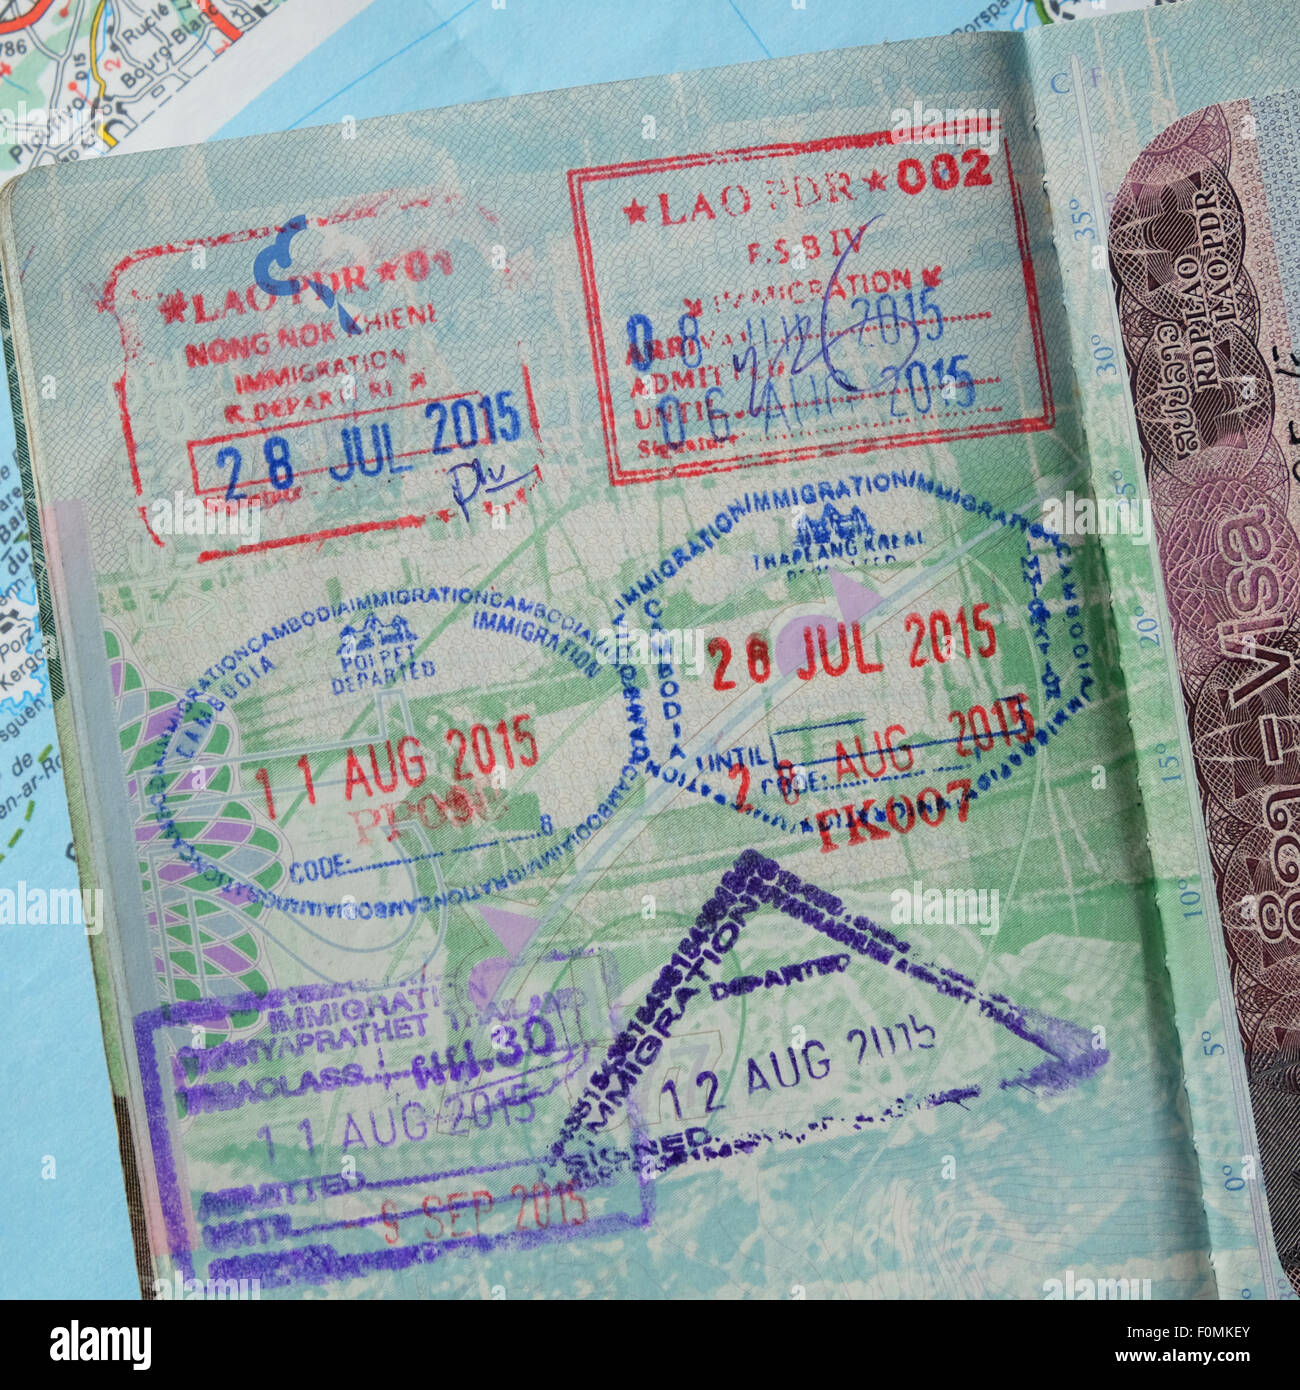 Travel stamps in a passport from countries in South East Asia dated 2015 - Stock Image